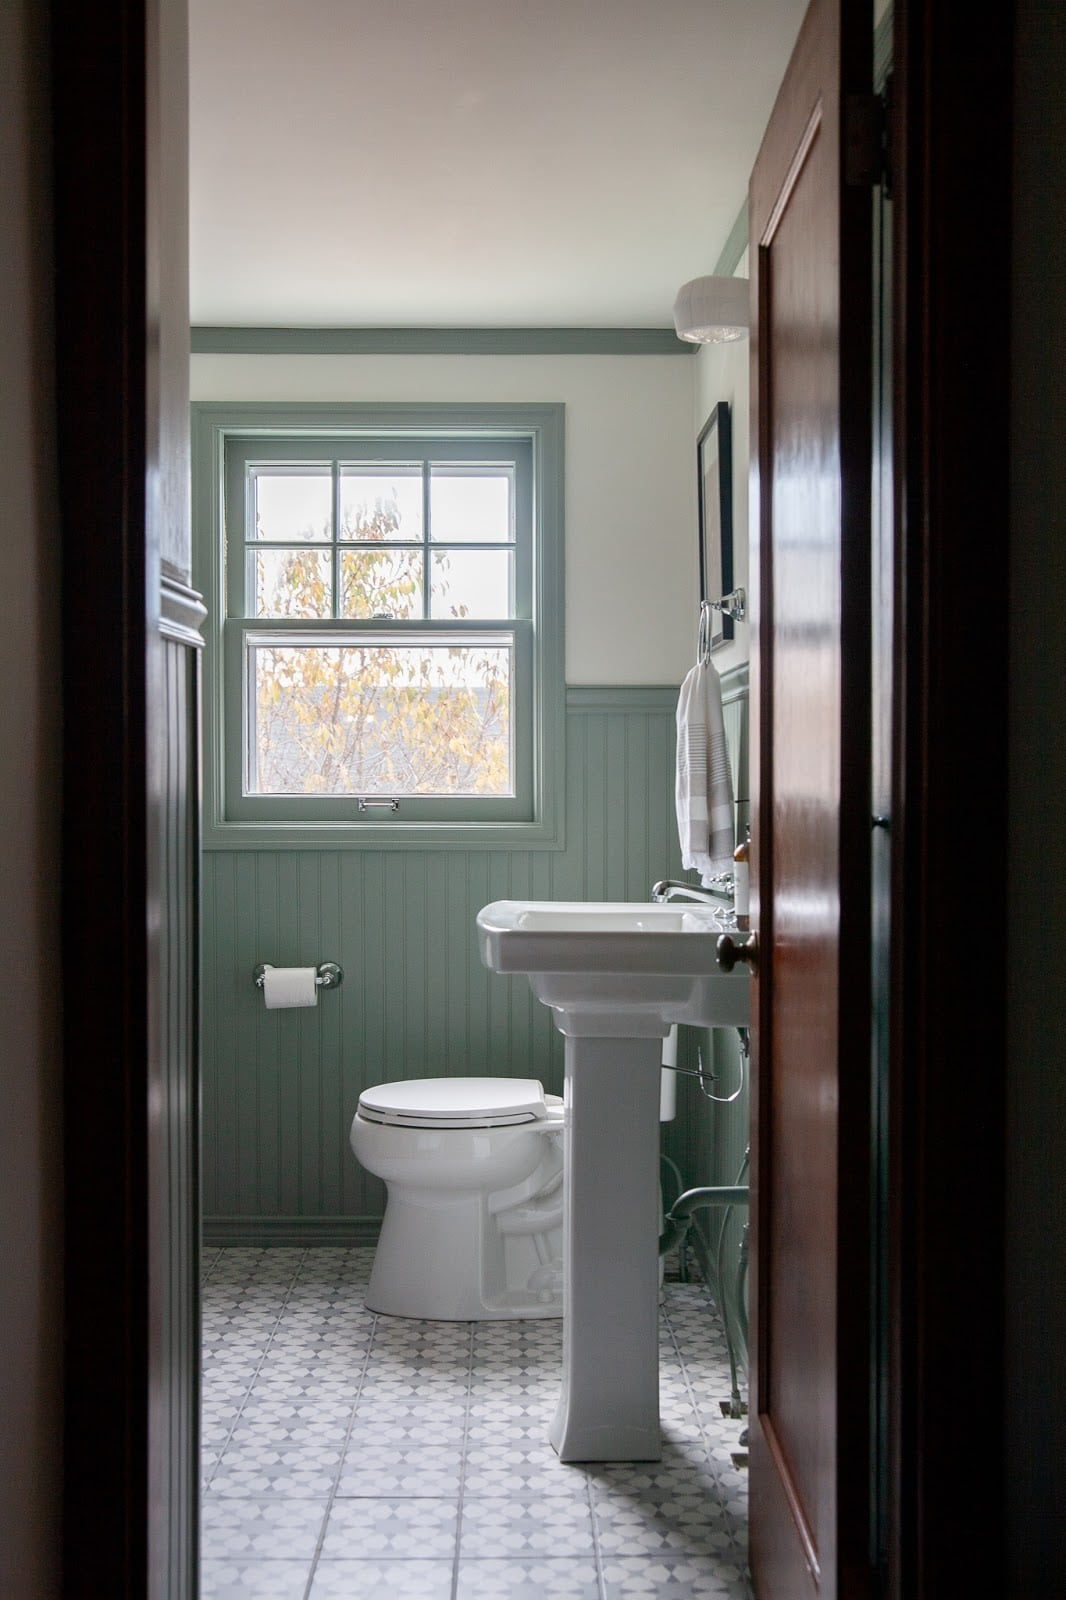 Modern traditional bathroom makeover featuring painted green bead board